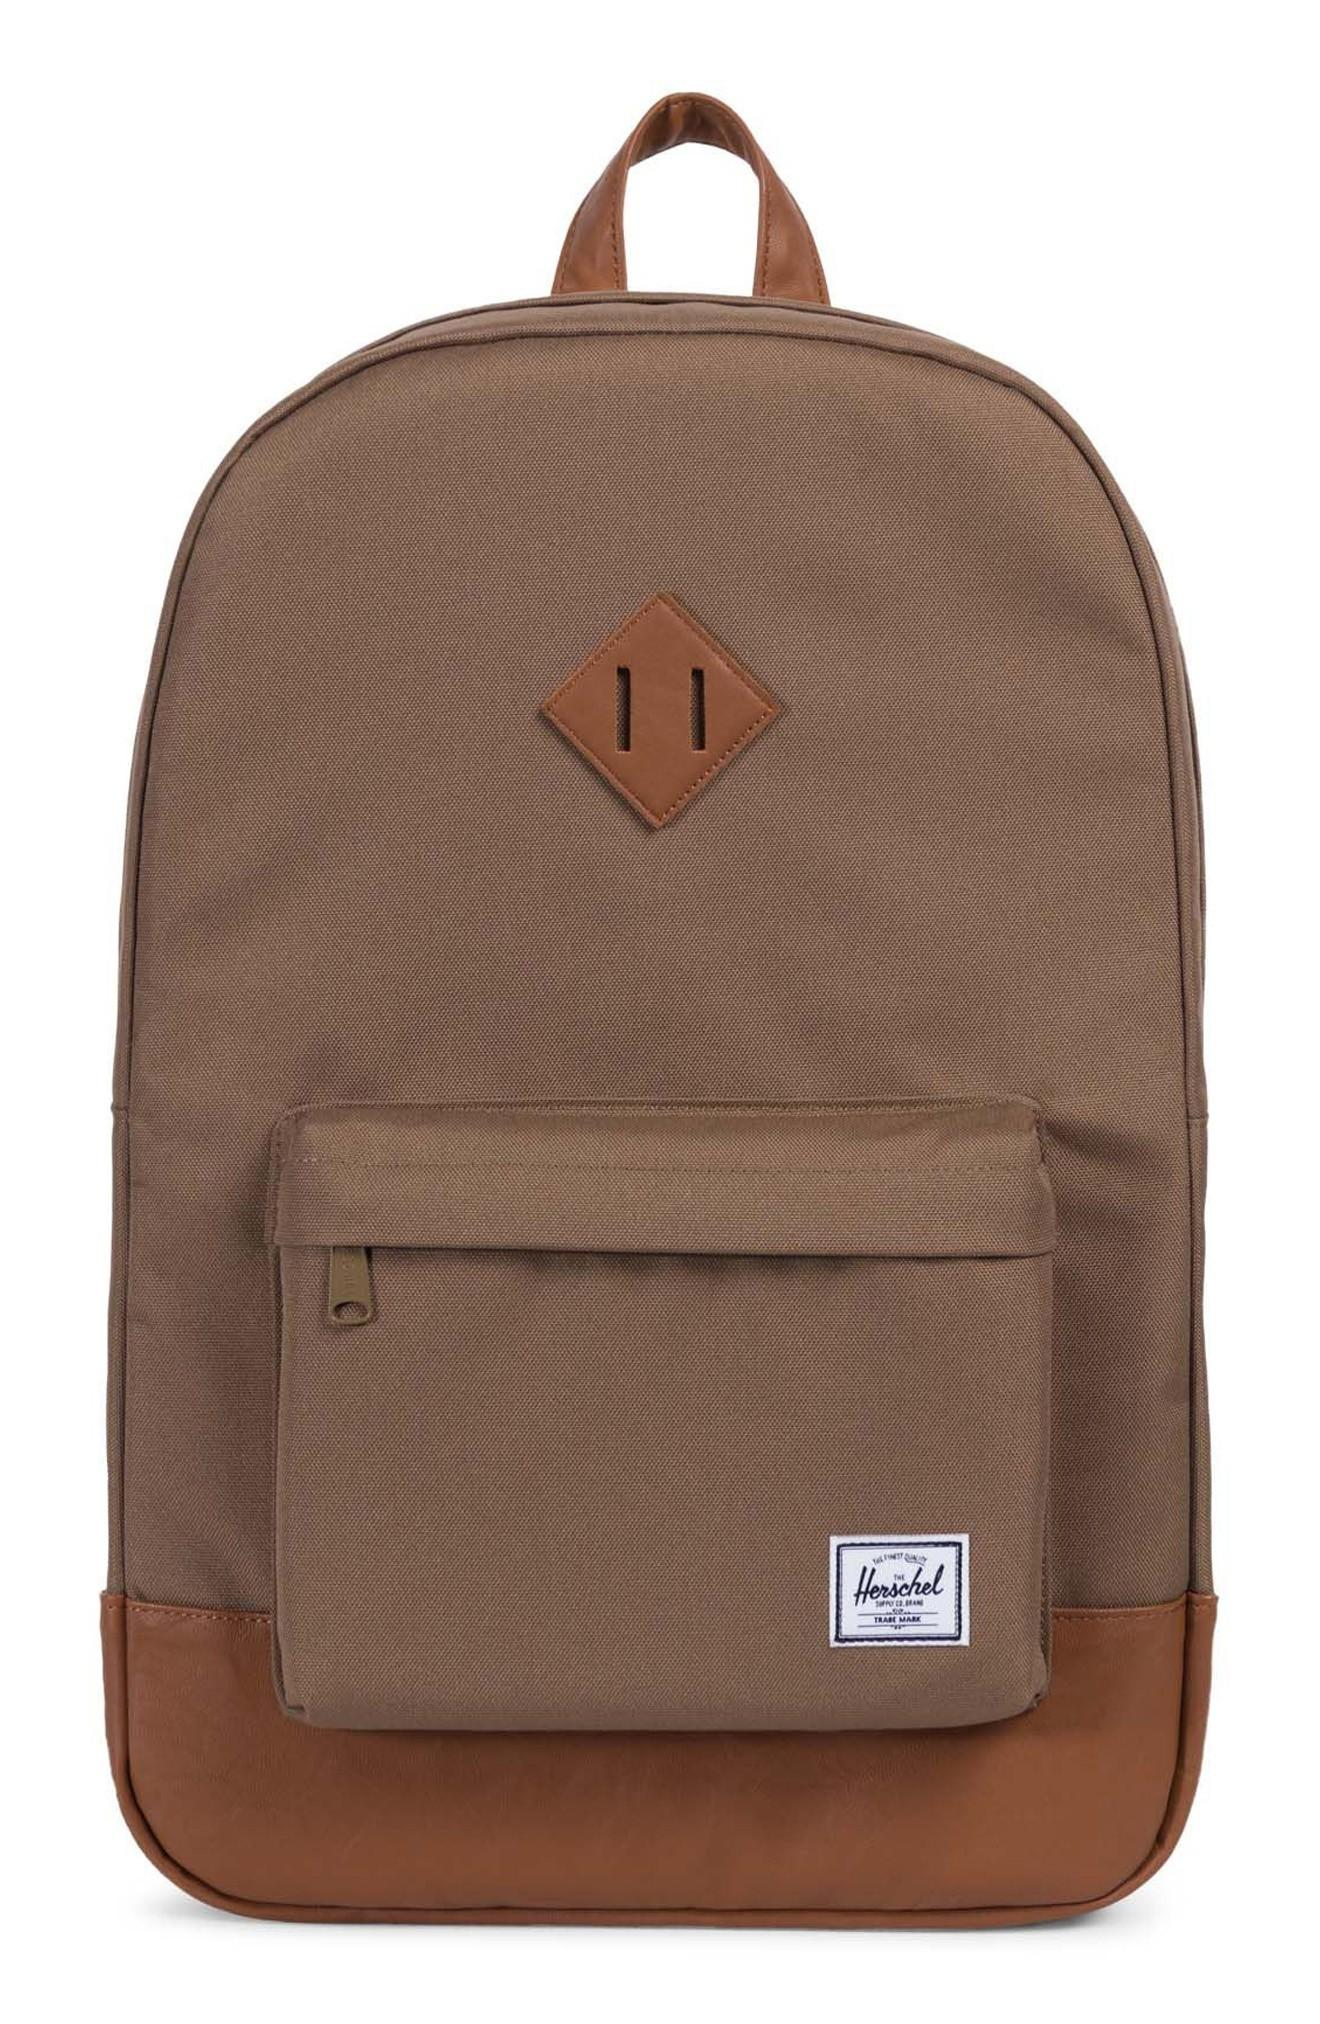 c968cb55c88 ... with adjustable padded shoulder straps to comfortably carry the weight  of everyday essentials. Style Name  Herschel Supply Co. Heritage Backpack.